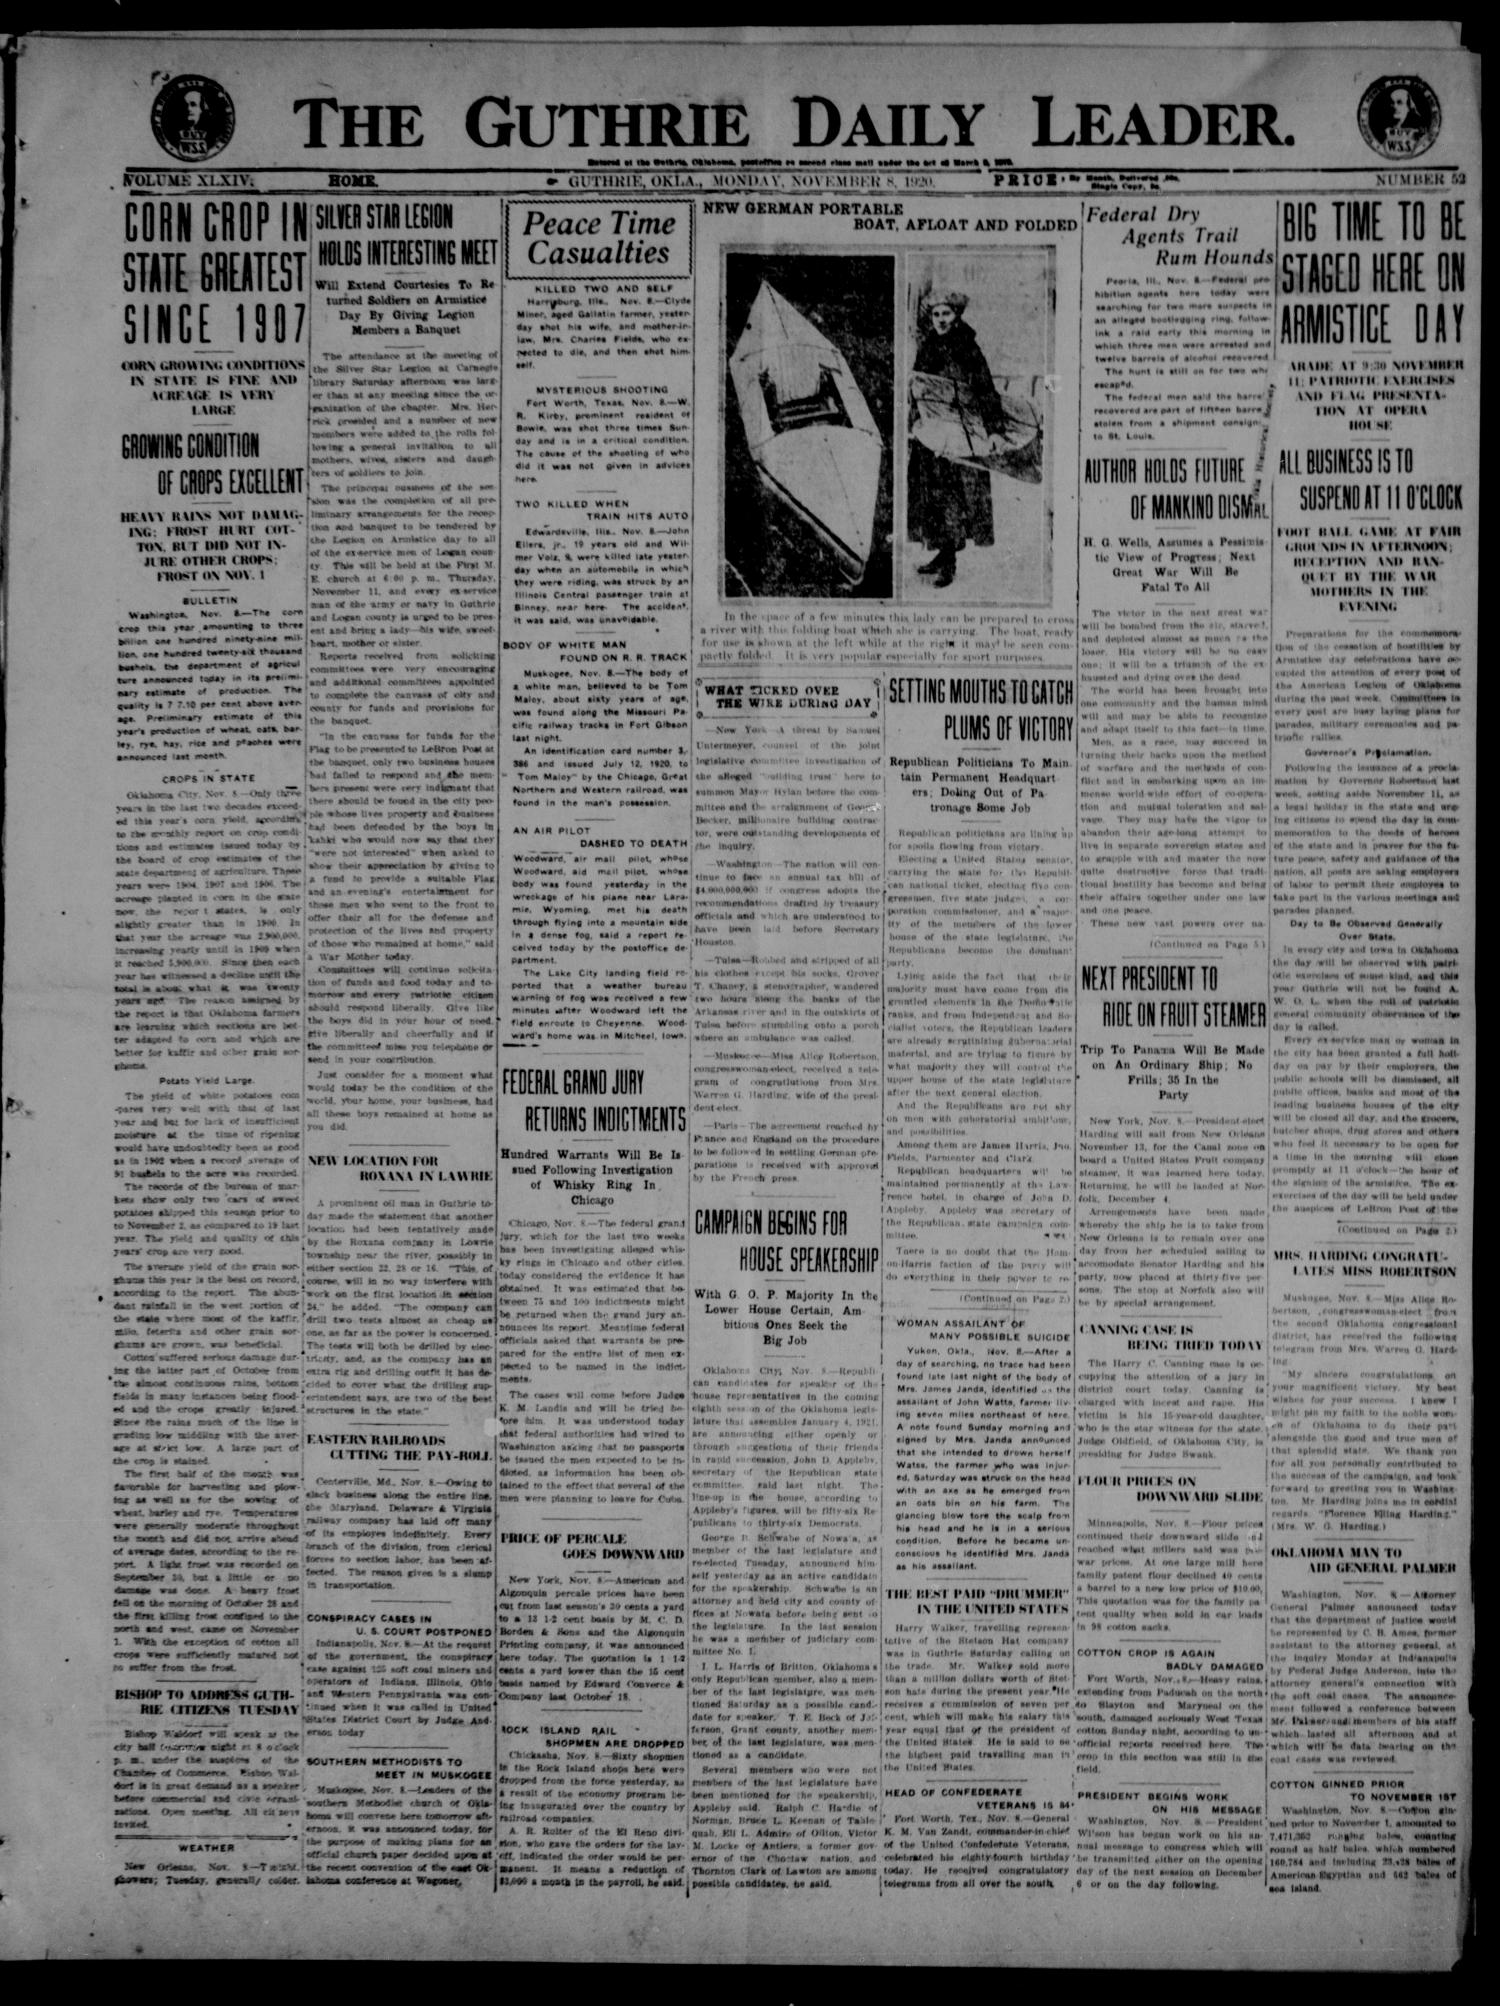 The Guthrie Daily Leader. (Guthrie, Okla.), Vol. 54, No. 52, Ed. 1 Monday, November 8, 1920                                                                                                      [Sequence #]: 1 of 8